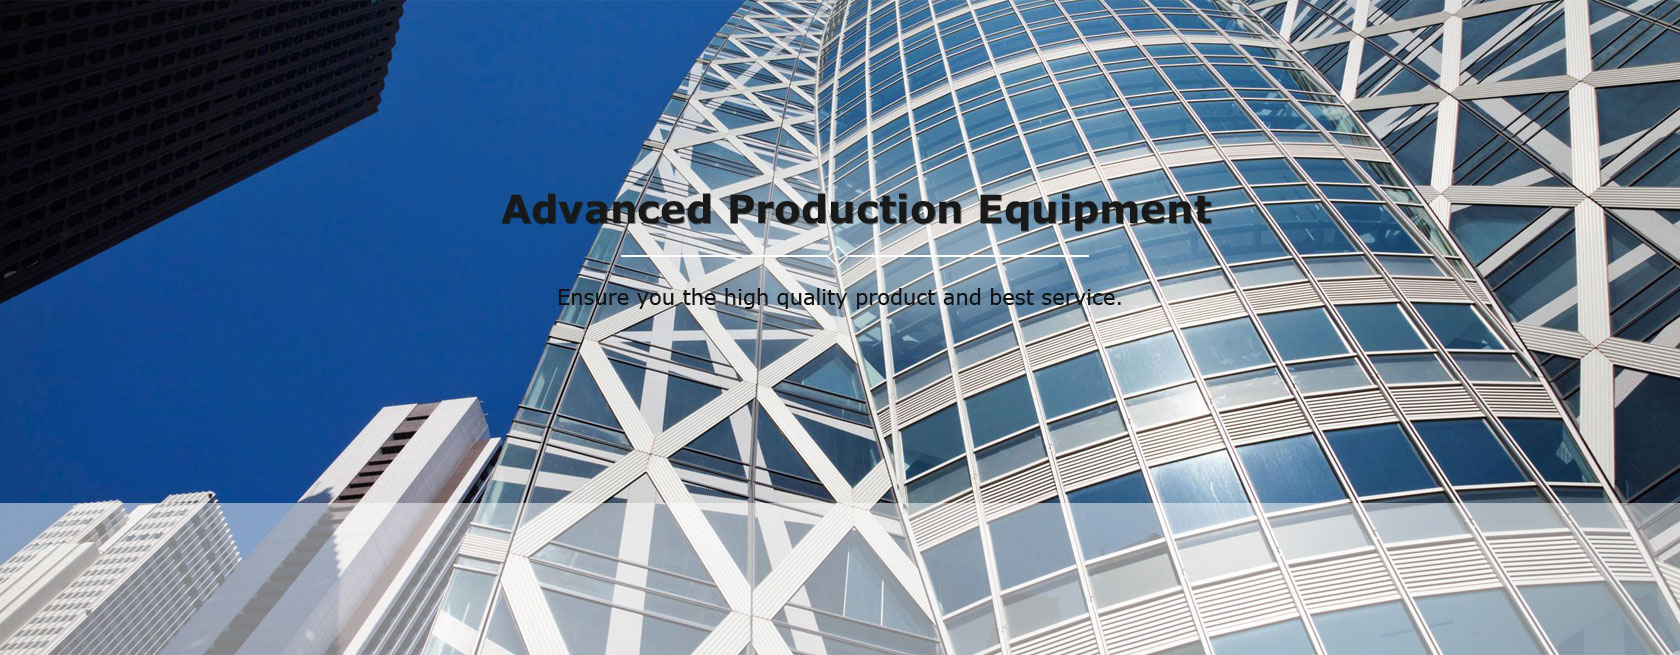 Advanced production equipment. Ensure you the high quality product and best service.